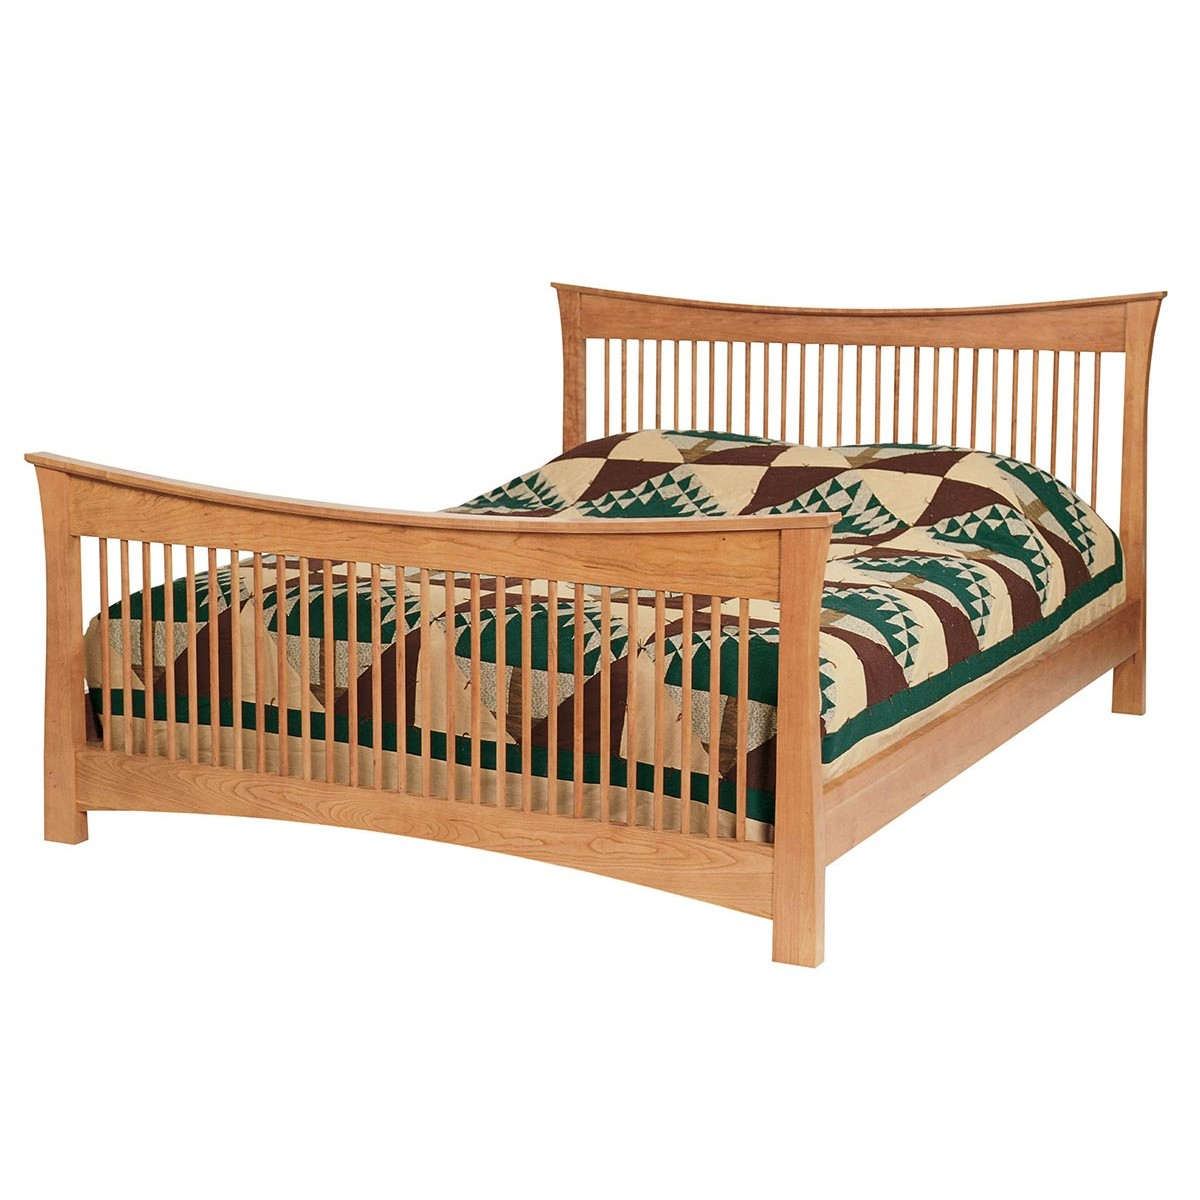 Lyndon Granby Queen Bed With Low Or Hi Footboard From